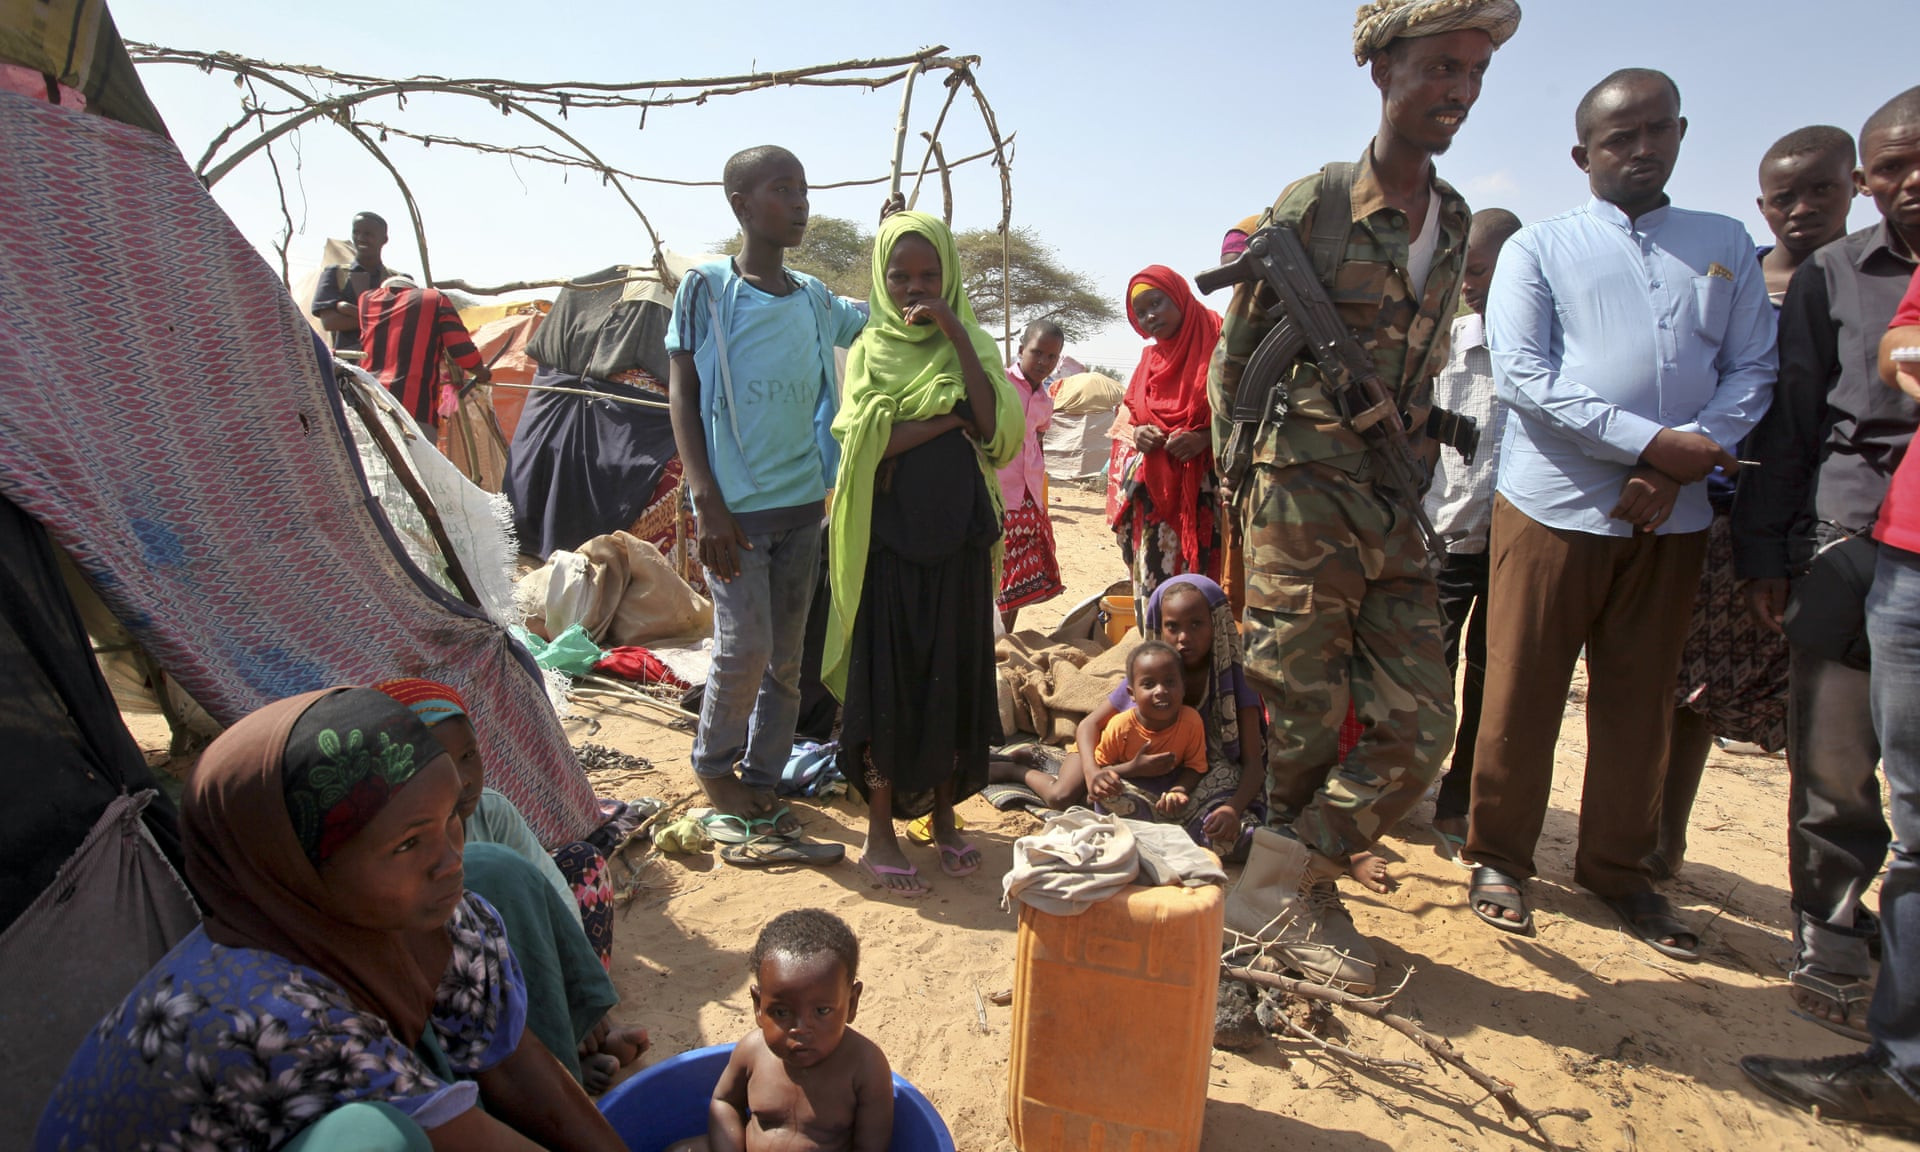 A soldier provides security as people forced from their homes gather at a camp in the Garasbaley area on the outskirts of Mogadishu, Somalia. Photograph: Farah Abdi Warsameh/AP